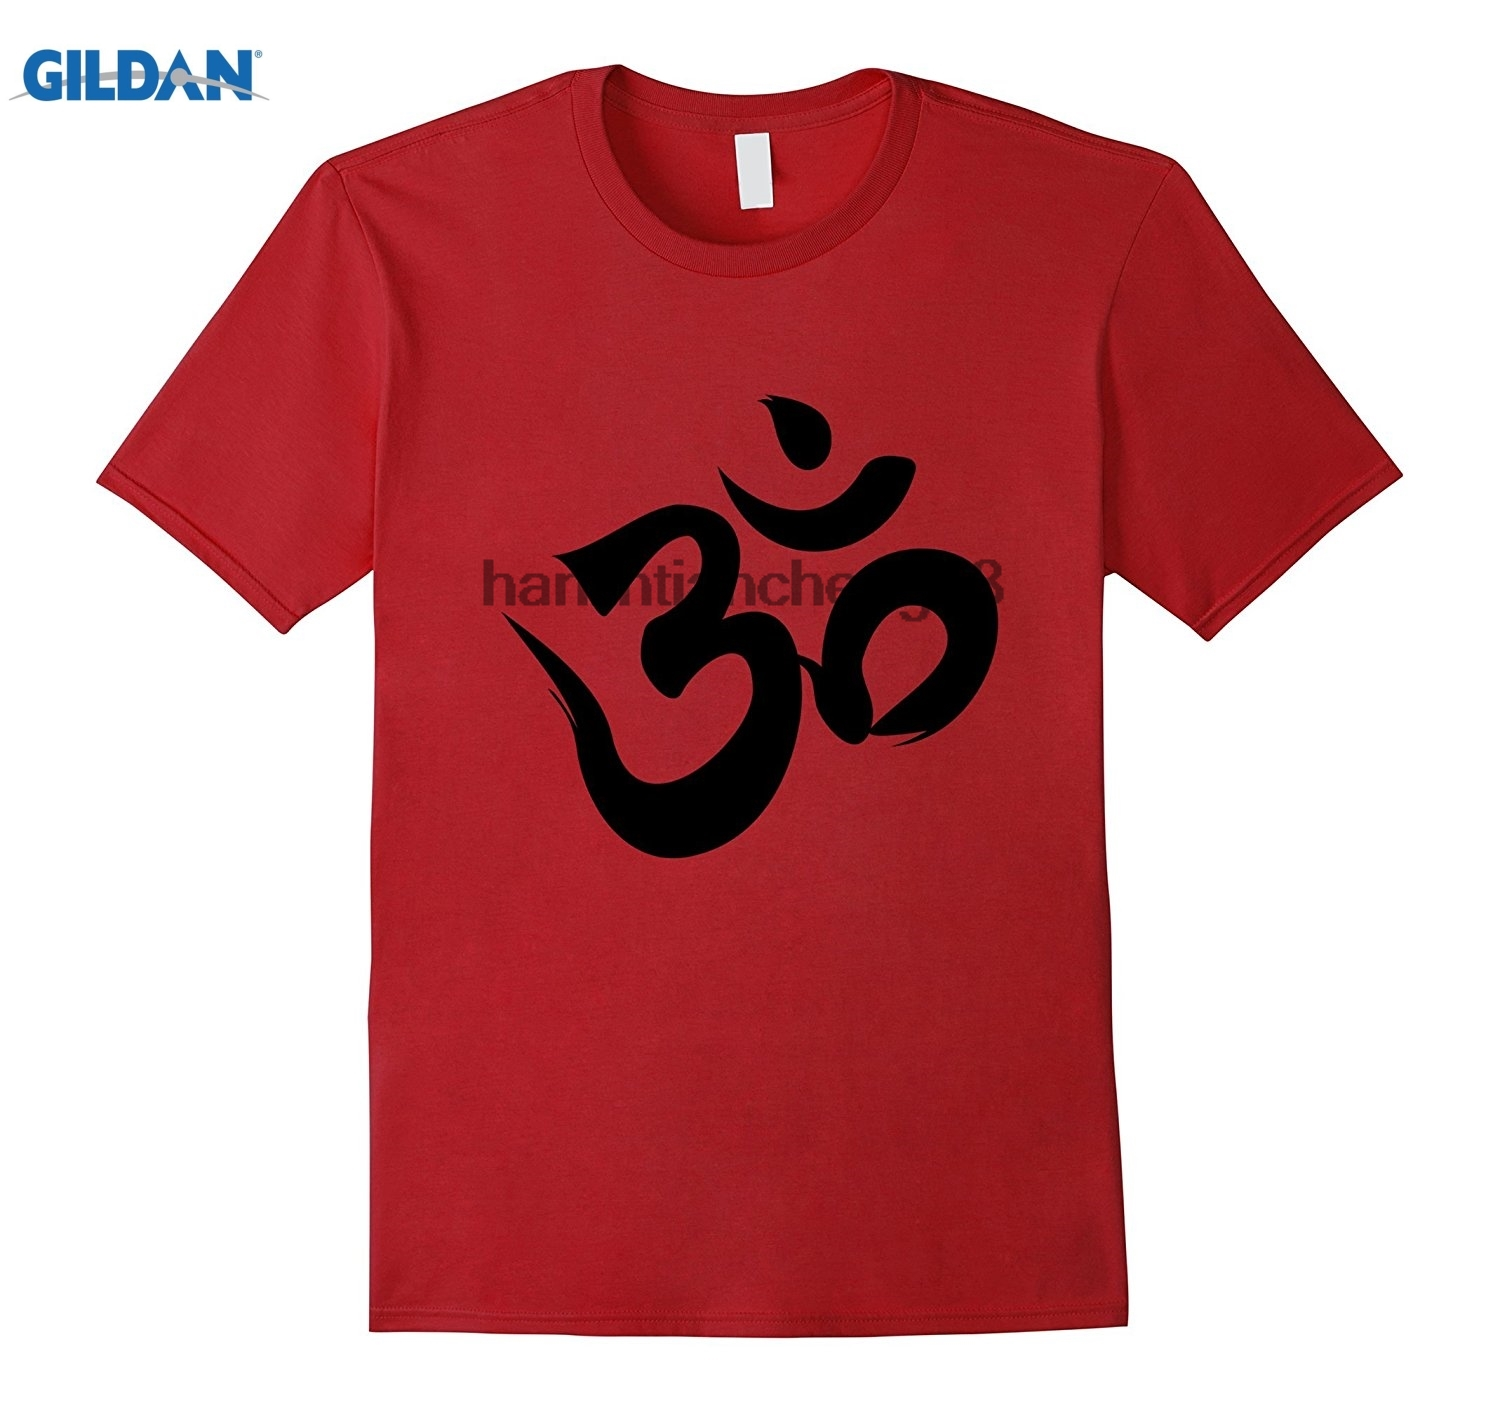 GILDAN 2018 Om T-shirt Woman and Men Ohm Symbol Om Meditation Spirituality Yogas Mens Womens Cotton T-Shirt T shirt